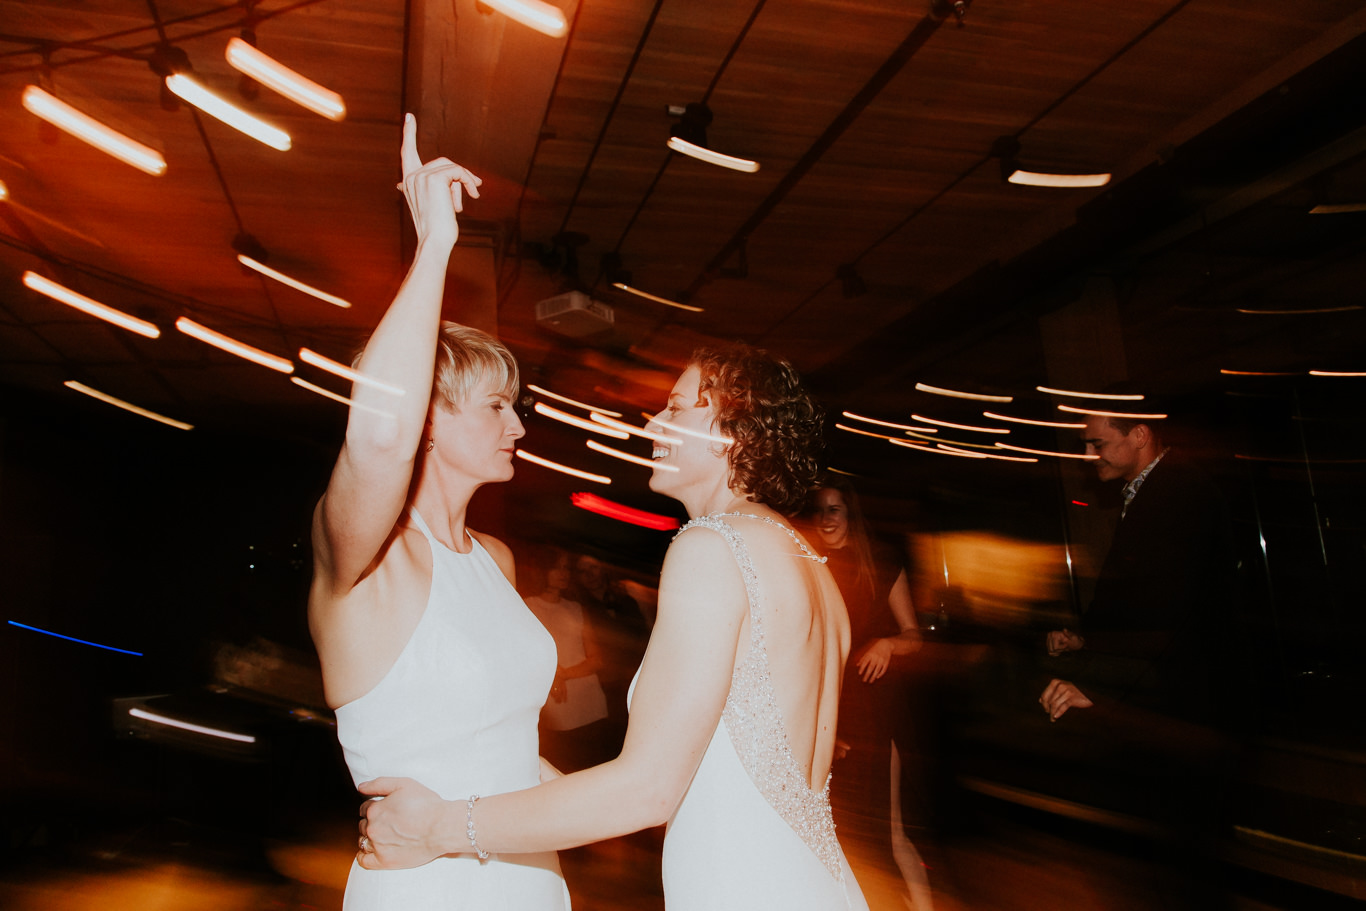 Lindsay-and-Heather-Charbar-Restaurant-Wedding-in-Calgary-231